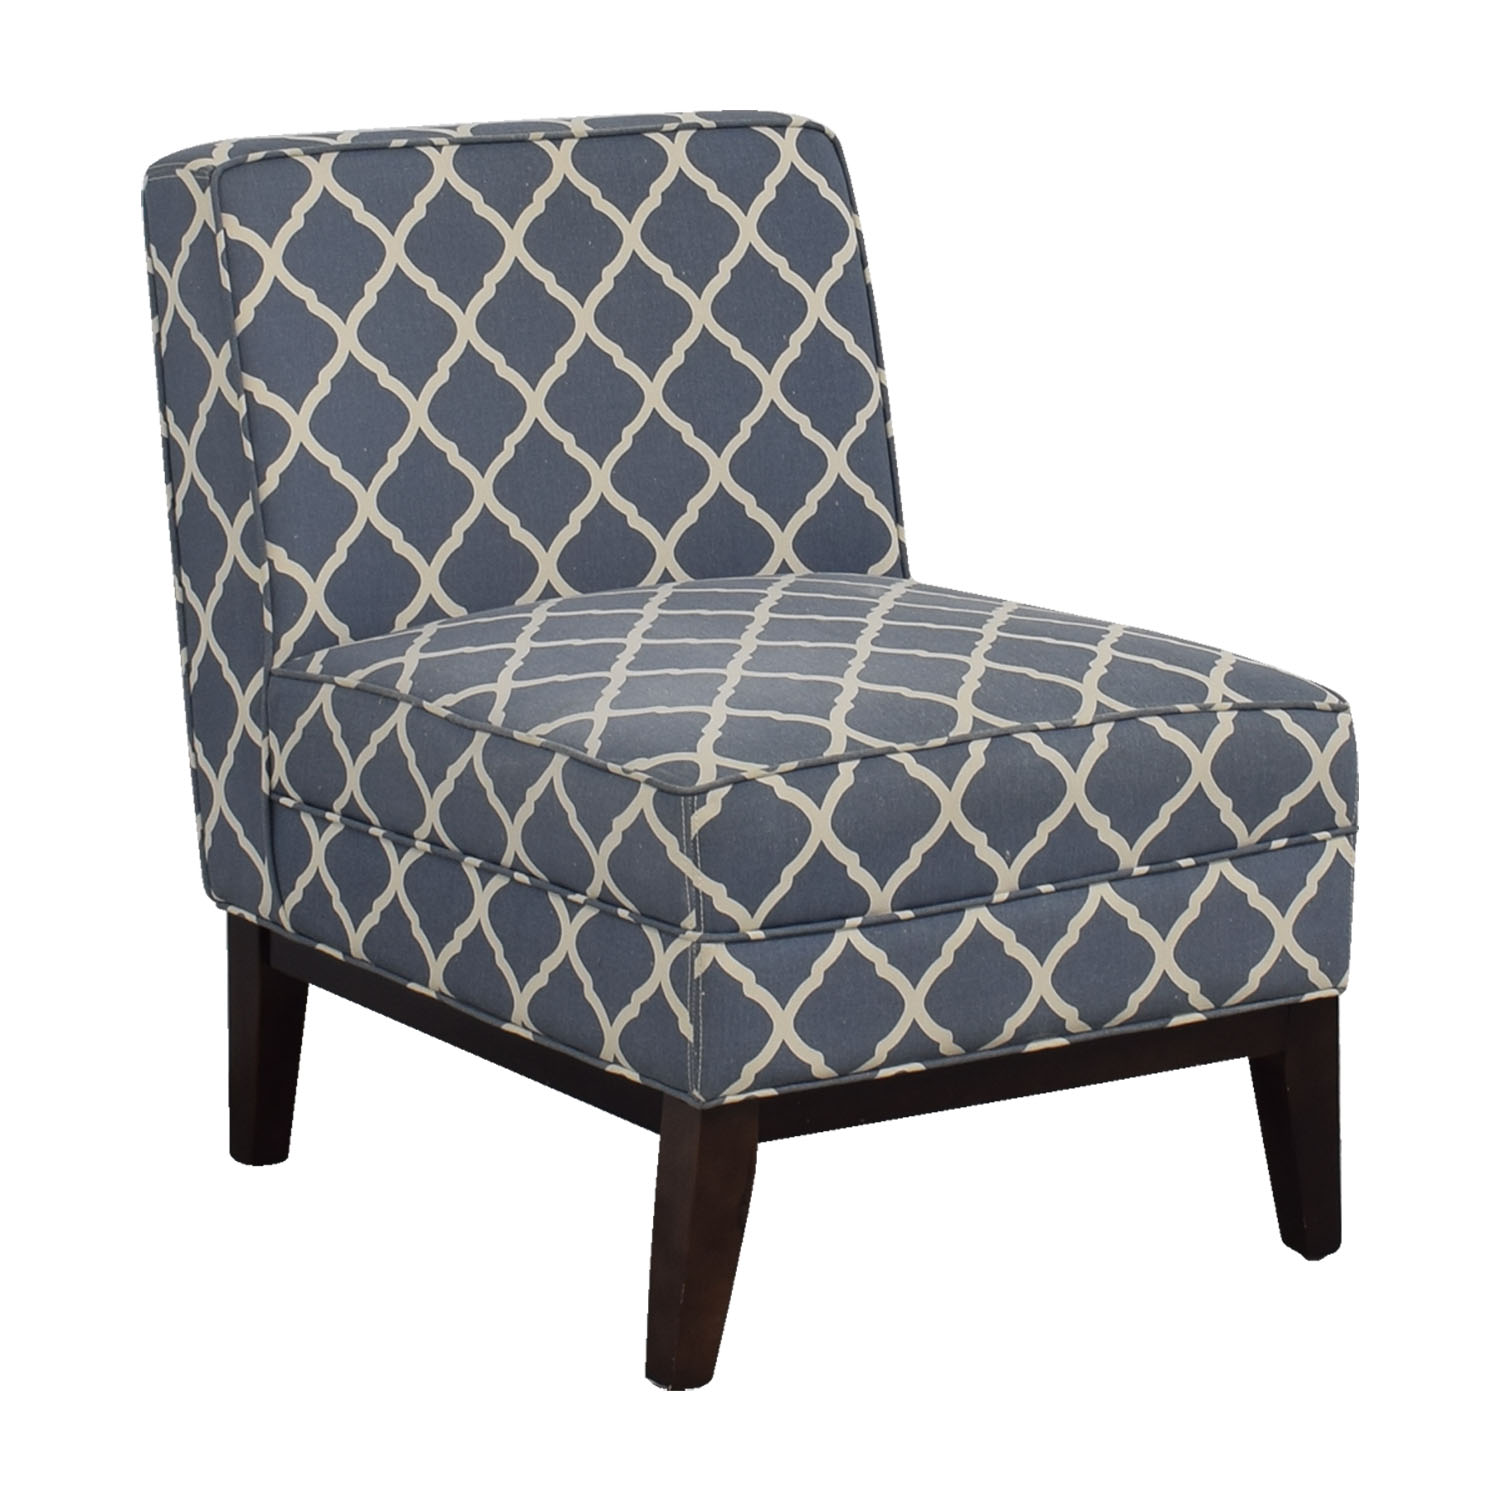 Joss and Main Joss and Main Blue and White Accent Chair second hand